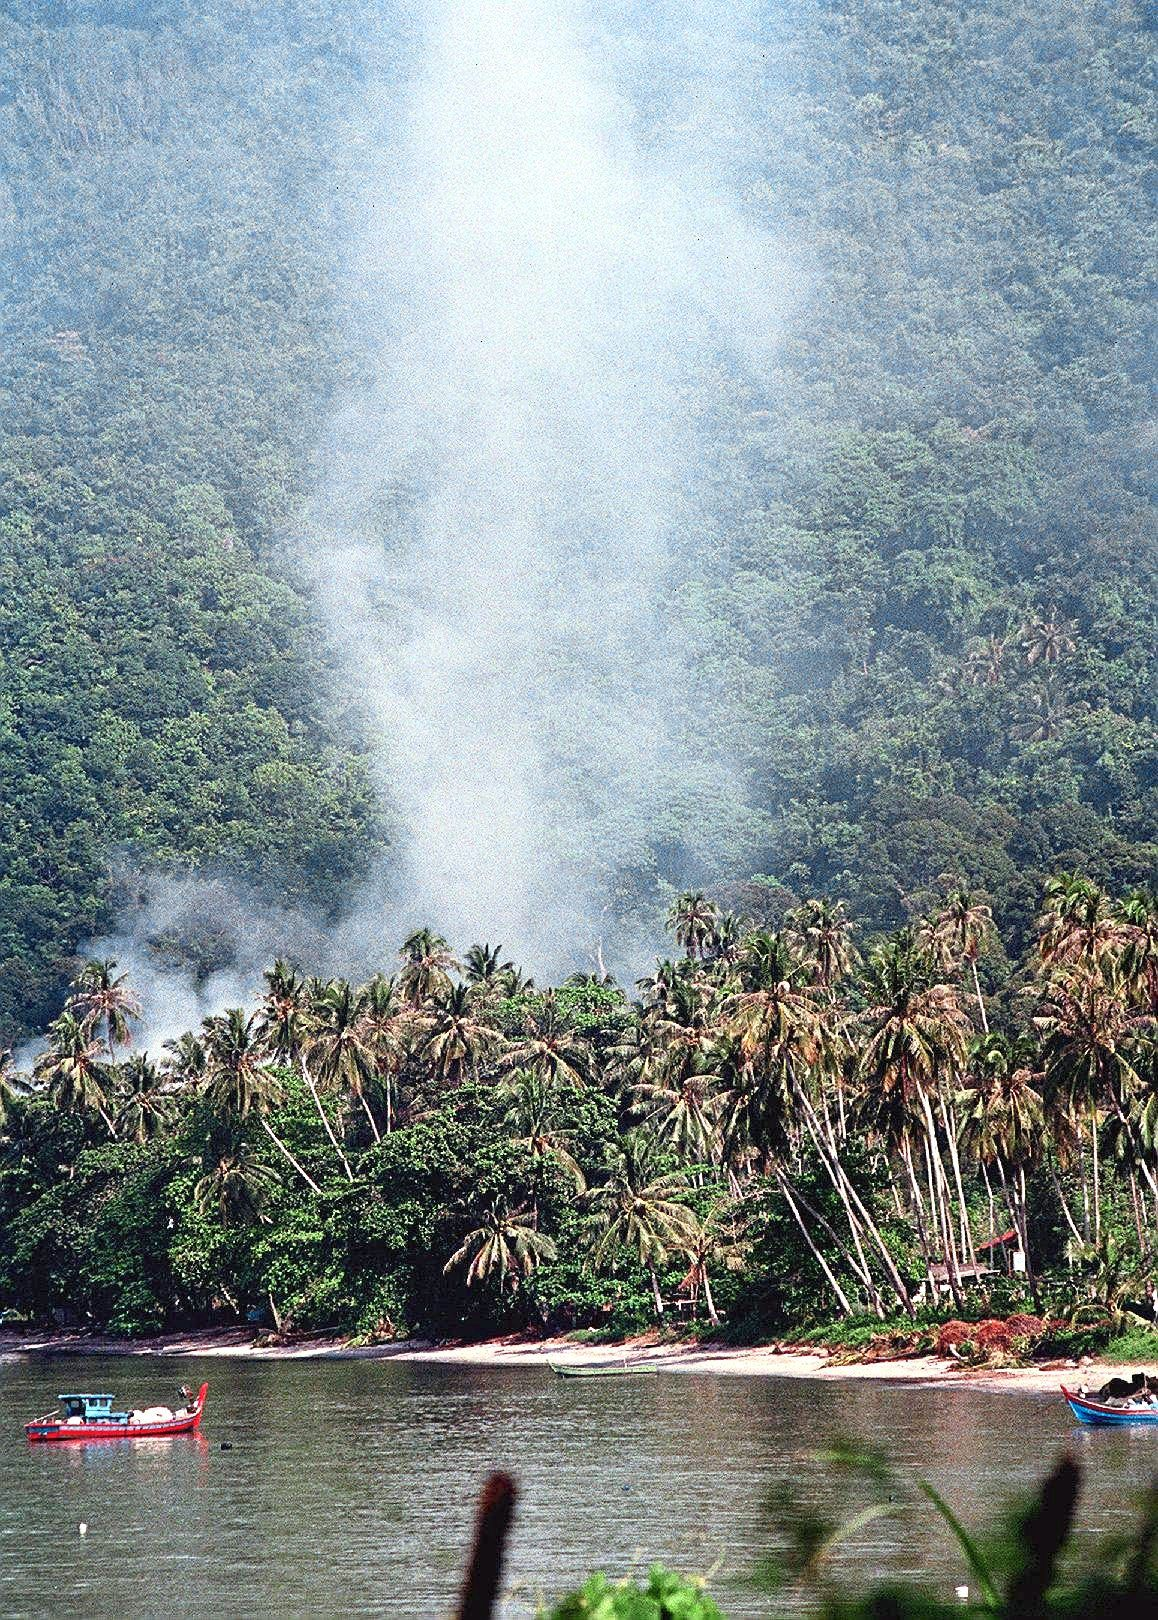 This is not a forest fire, but smoke from the burning of culled pigs that were infected by the Nipah virus at Gertak Sanggul, Penang, in 2011.